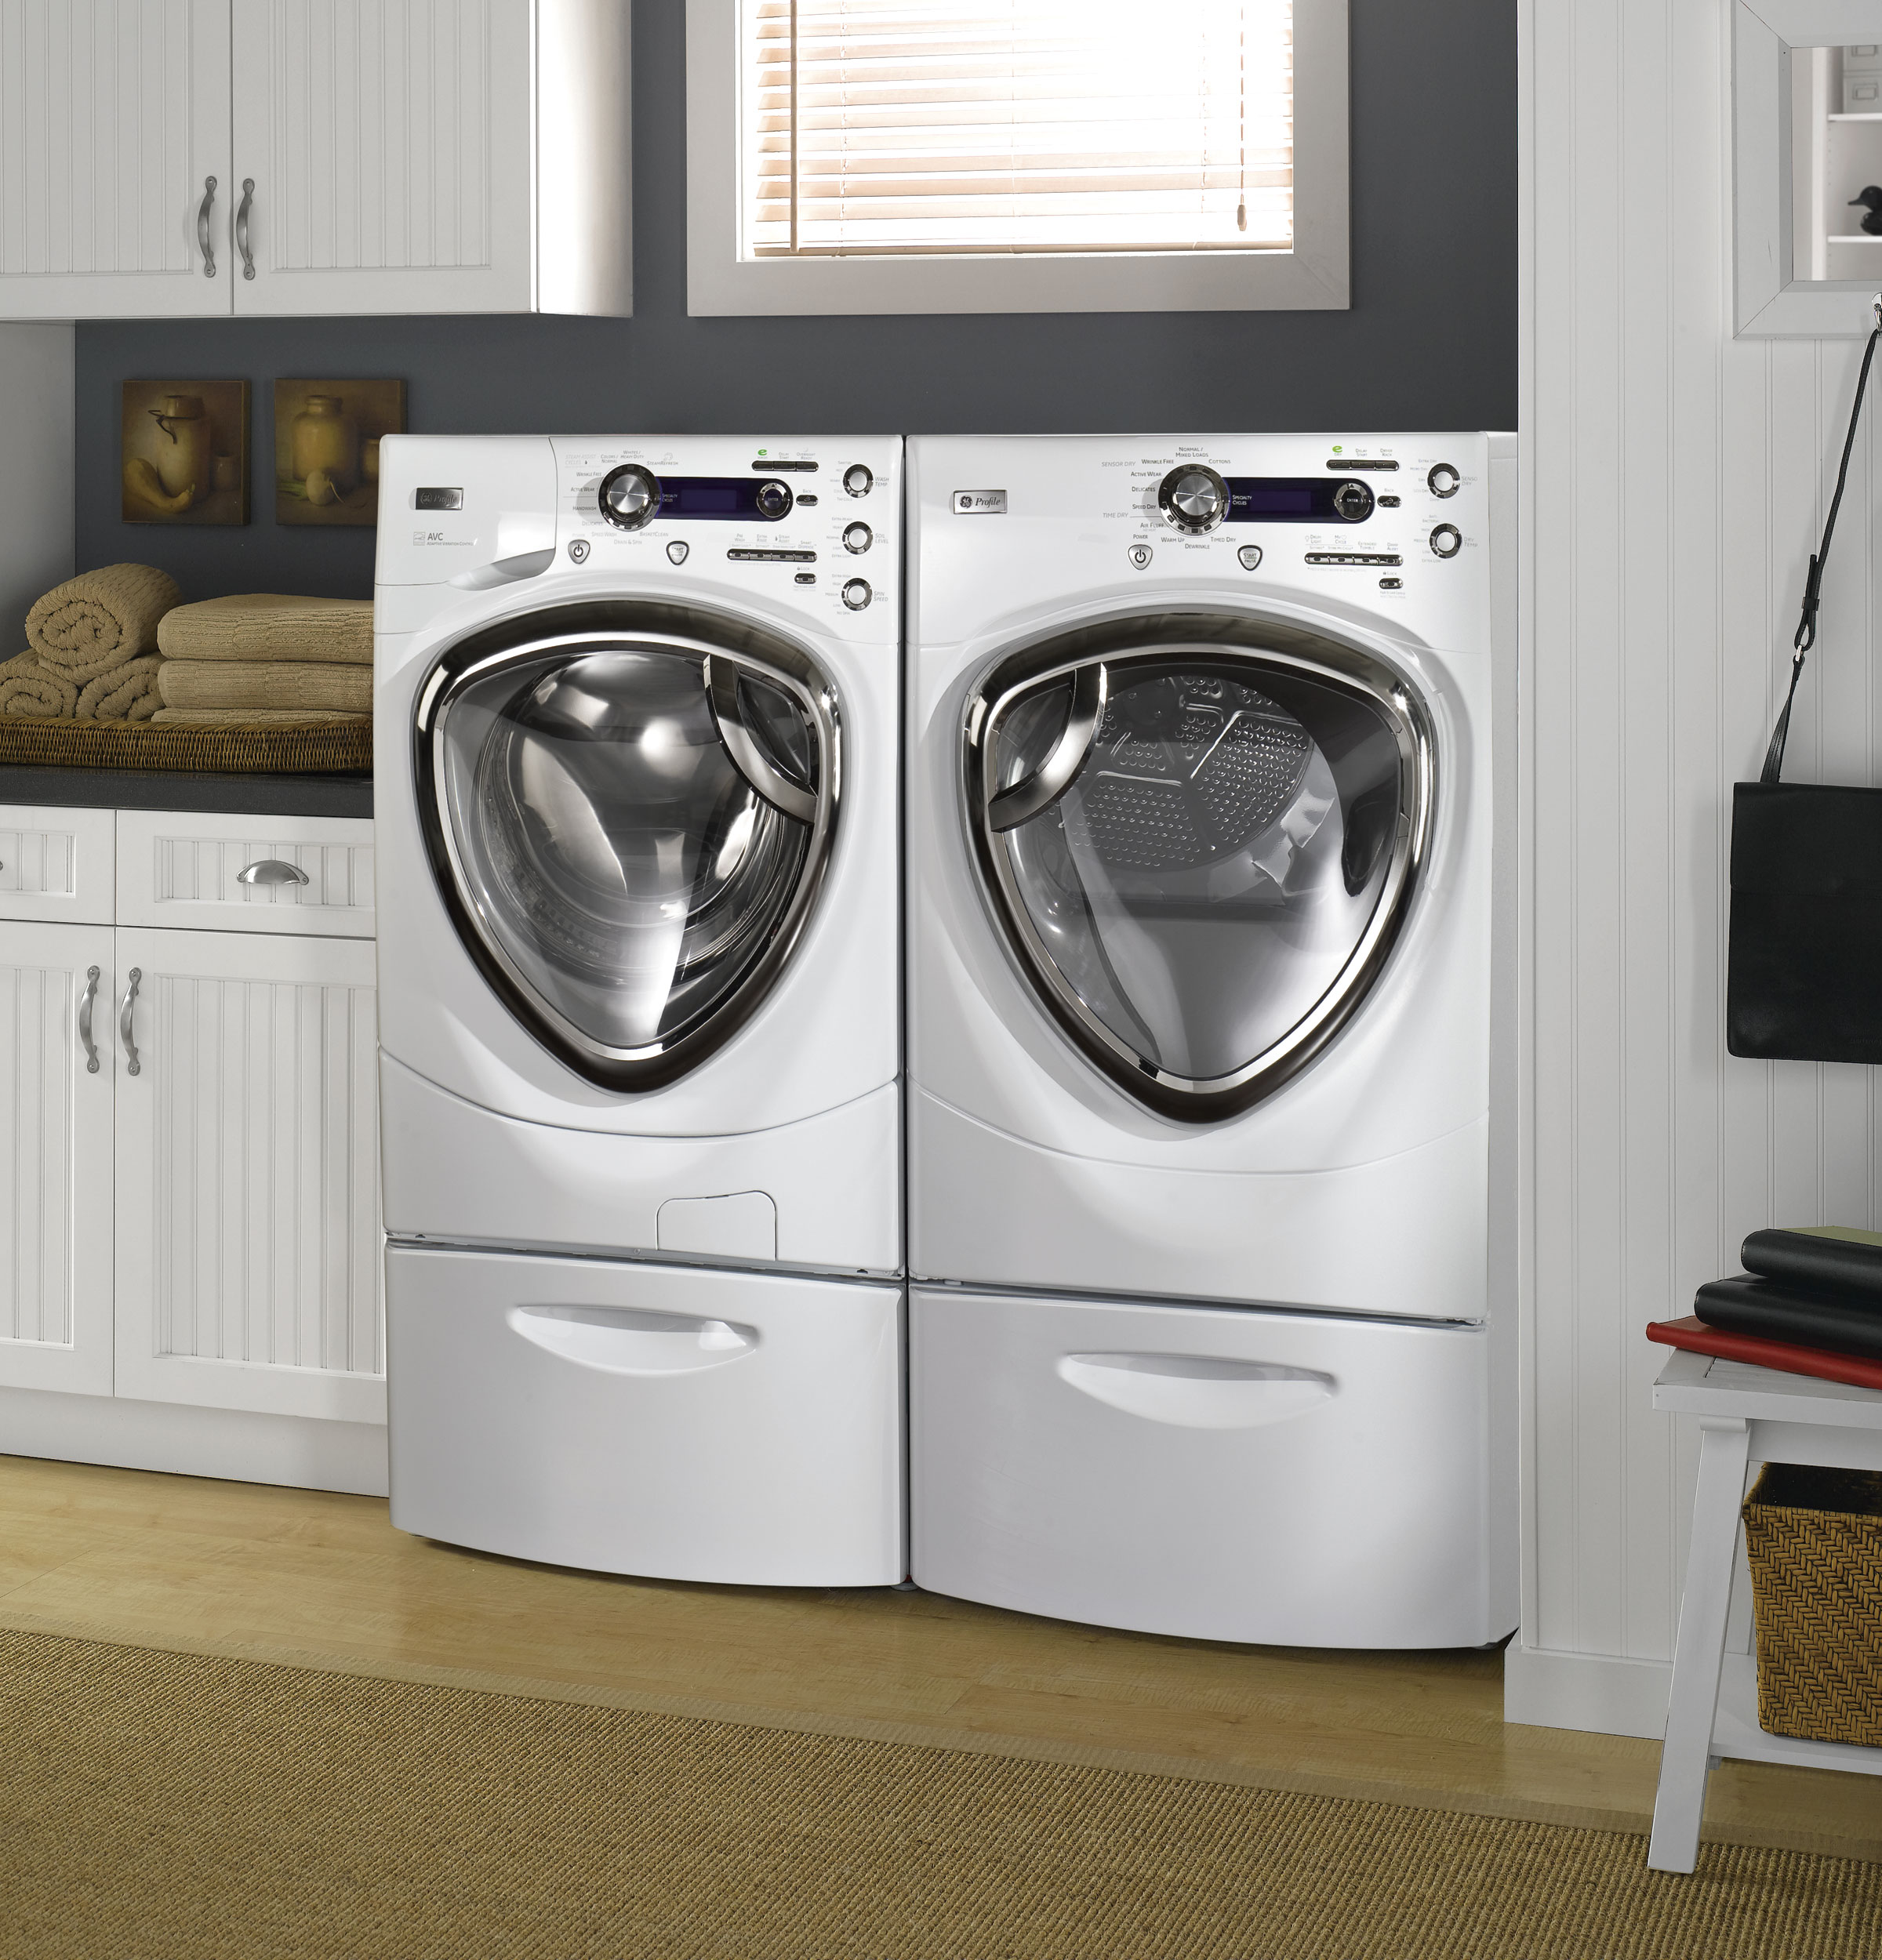 that project in coolest hewasher left pinterest instead bucks he washer part homemade shelling my the made between eli pedestal enough out me pedestals is and dryer wood of prefab ones for space